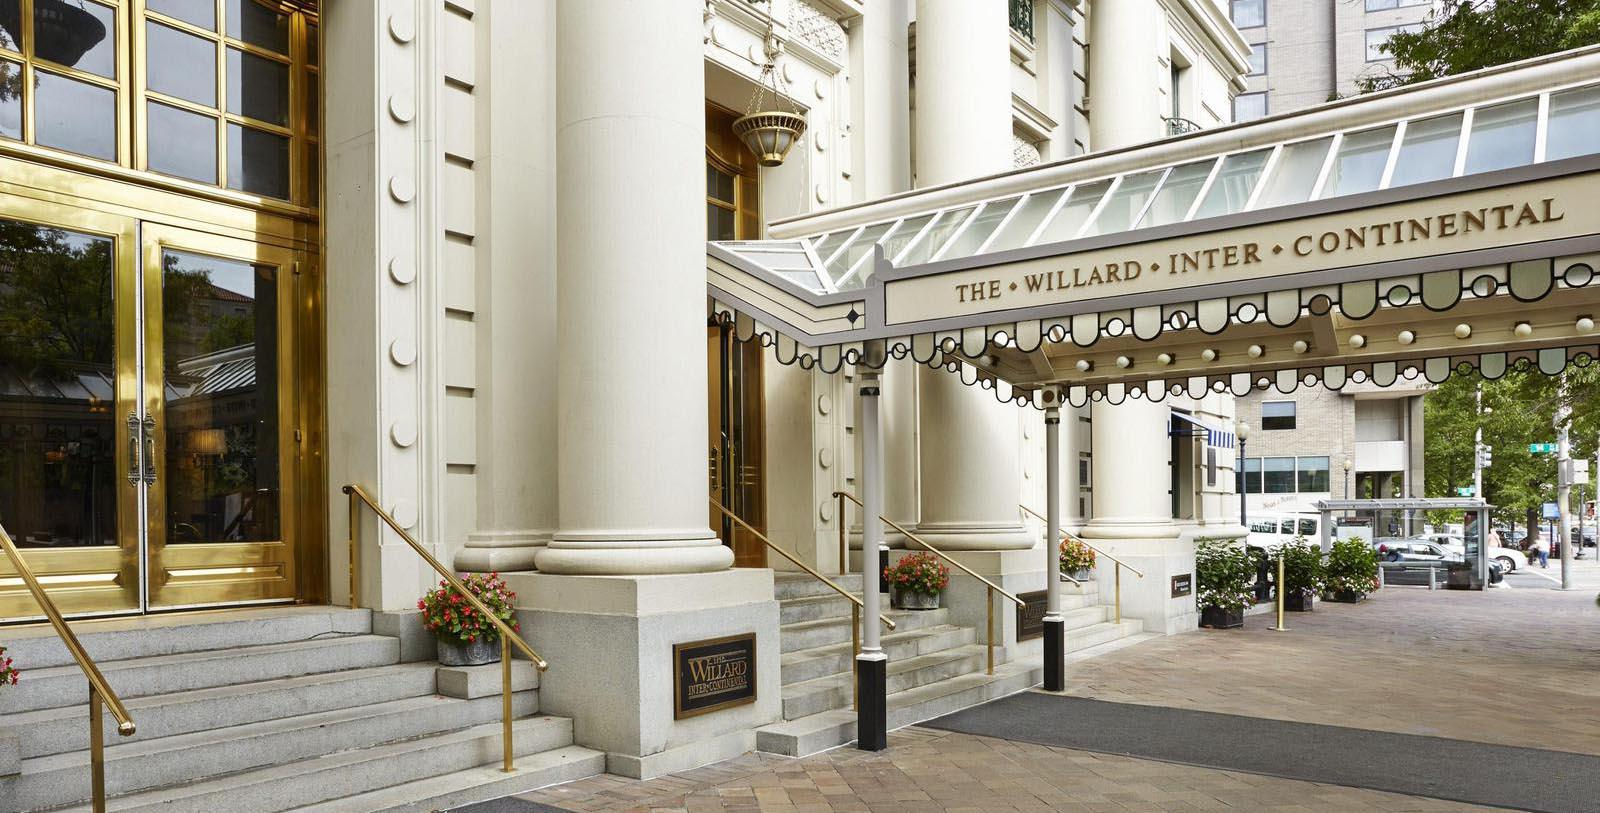 Image of hotel exterior The Willard InterContinental, Washington DC, 1847, Member of Historic Hotels of America, Discover